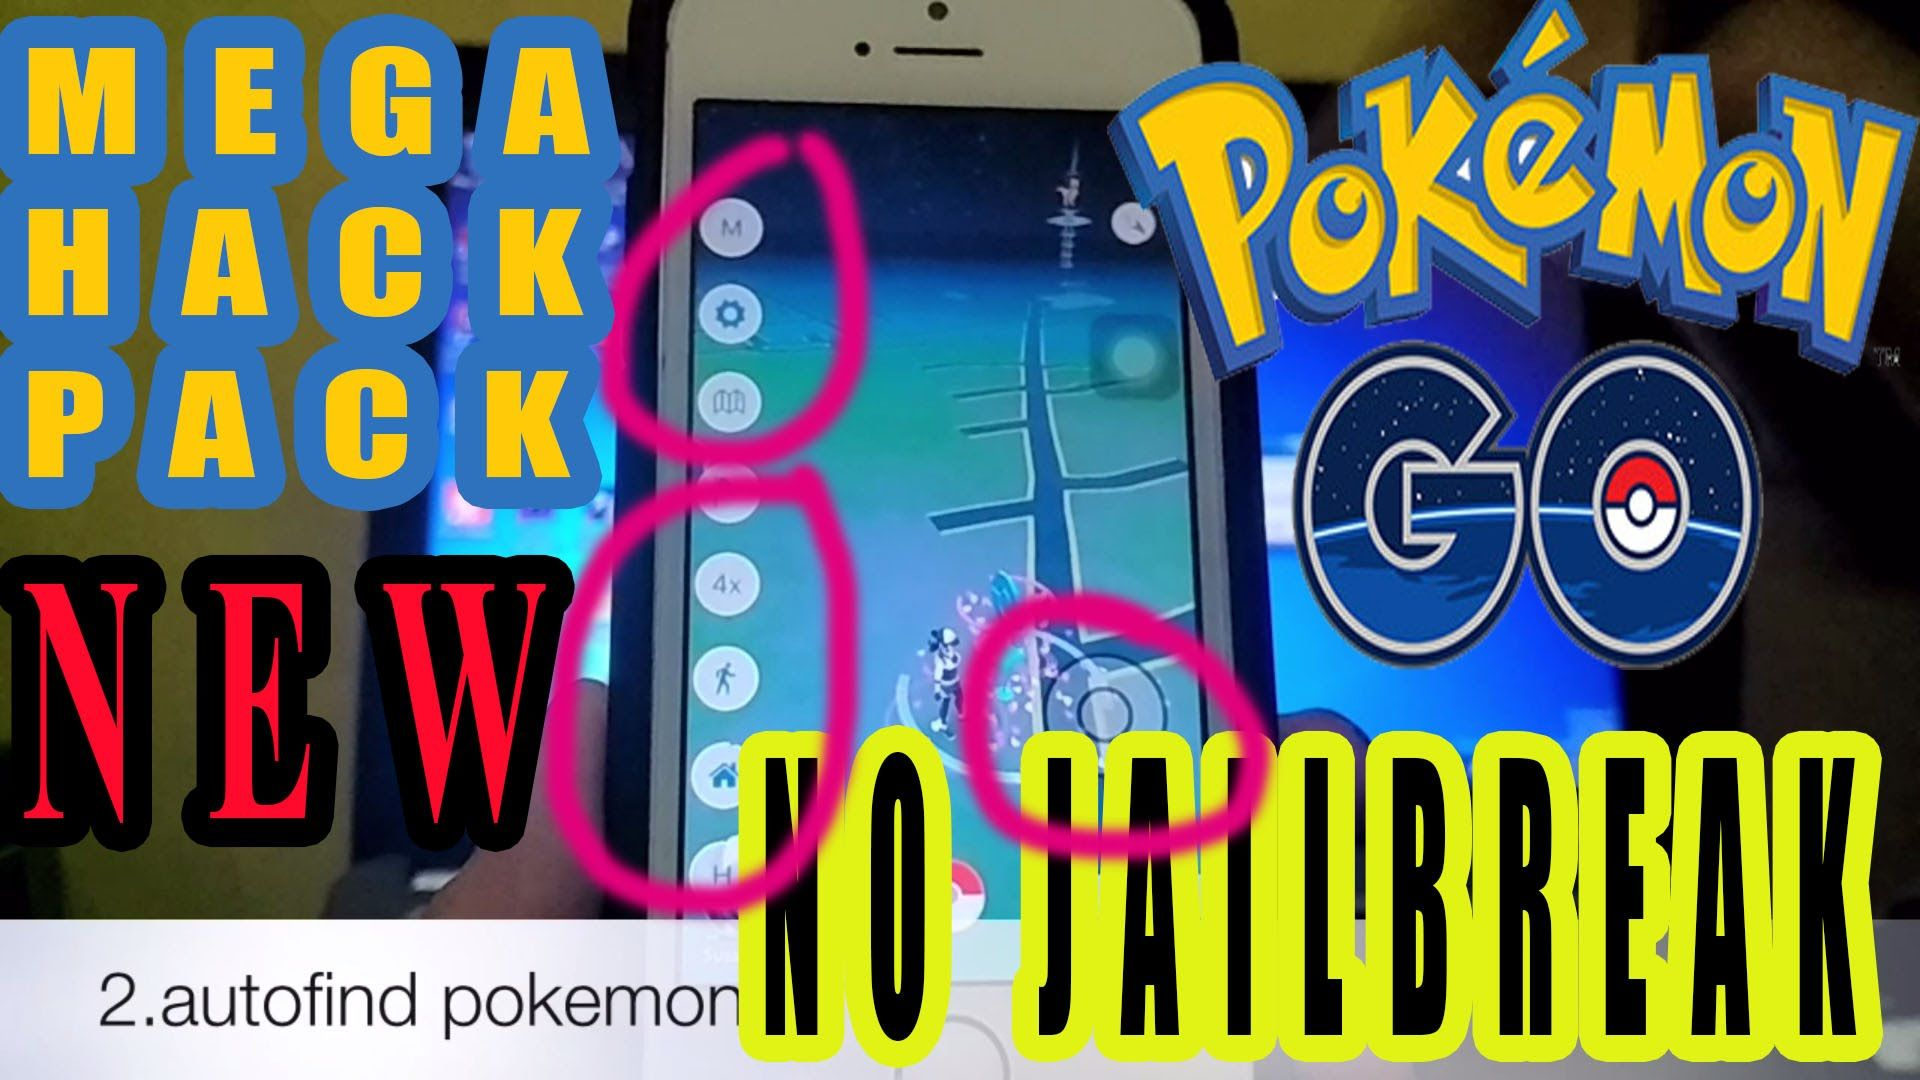 Pokemon Go Hack Cheats - I will show you the best method